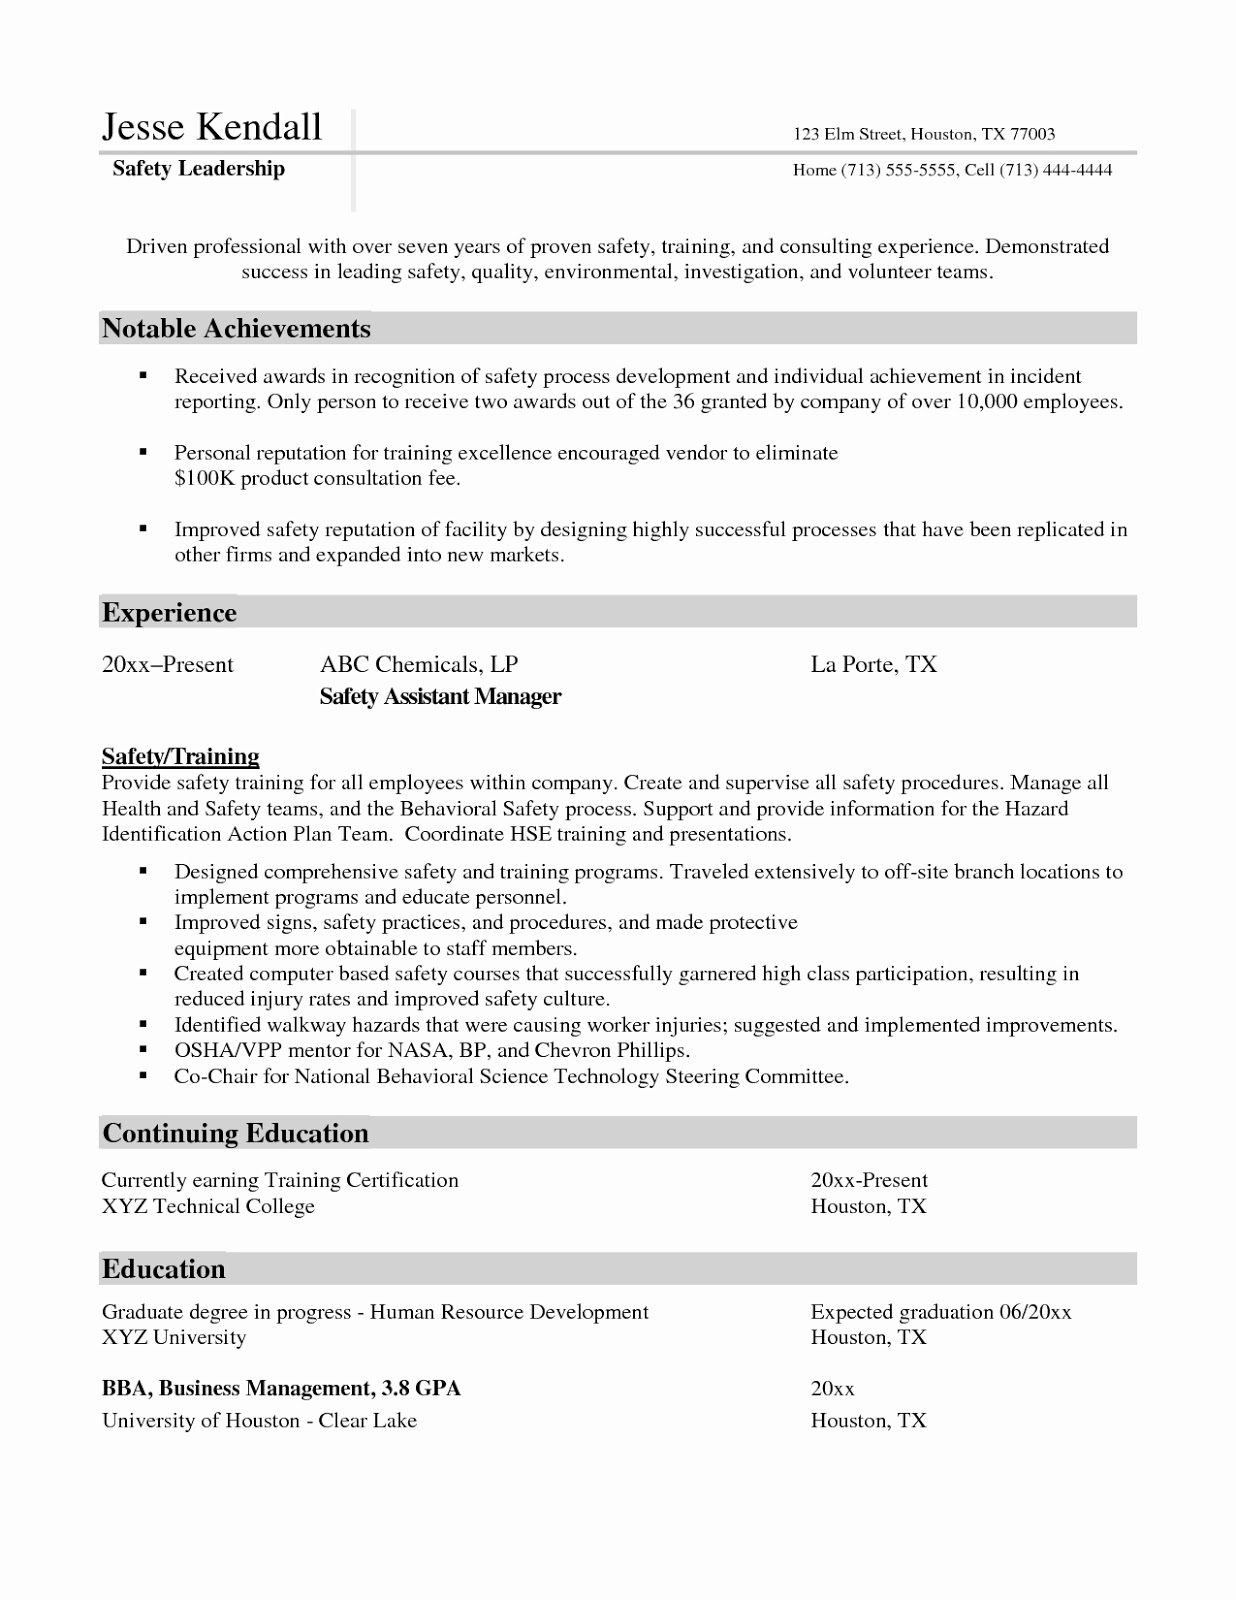 assistant nurse manager resume assistant nurse manager resume objective 2019 assistant nurse manager resume examples assistant nurse manager resume sample assistant nurse manager resume cover letter 2020 objective for assistant nurse manager resume resume for assistant nurse manager position sample resume for assistant nurse manager position